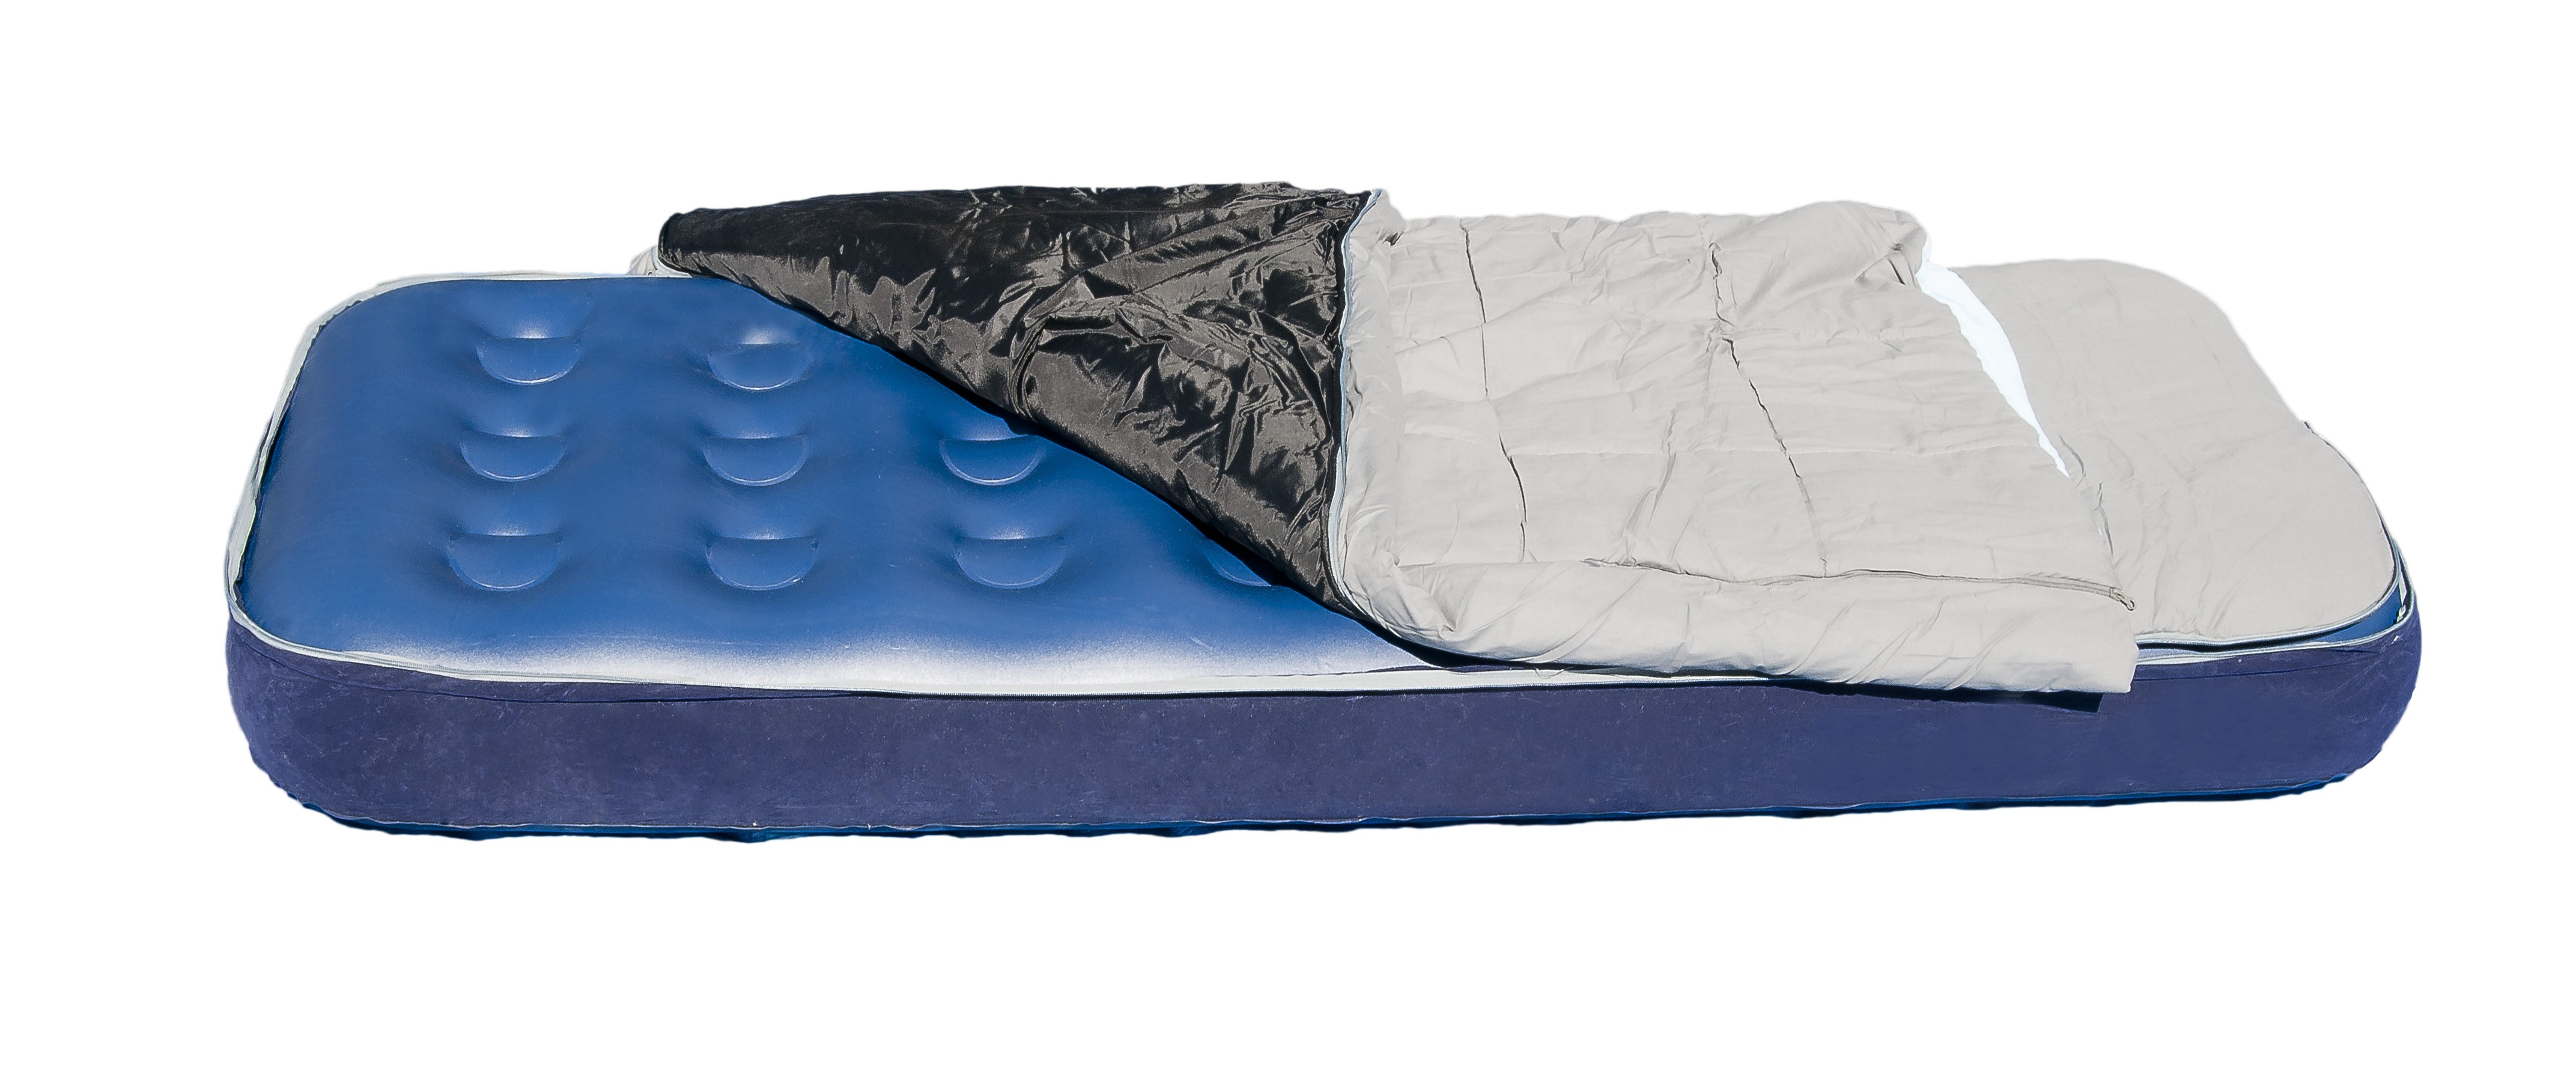 matelas gonflable avec duvet int gr. Black Bedroom Furniture Sets. Home Design Ideas